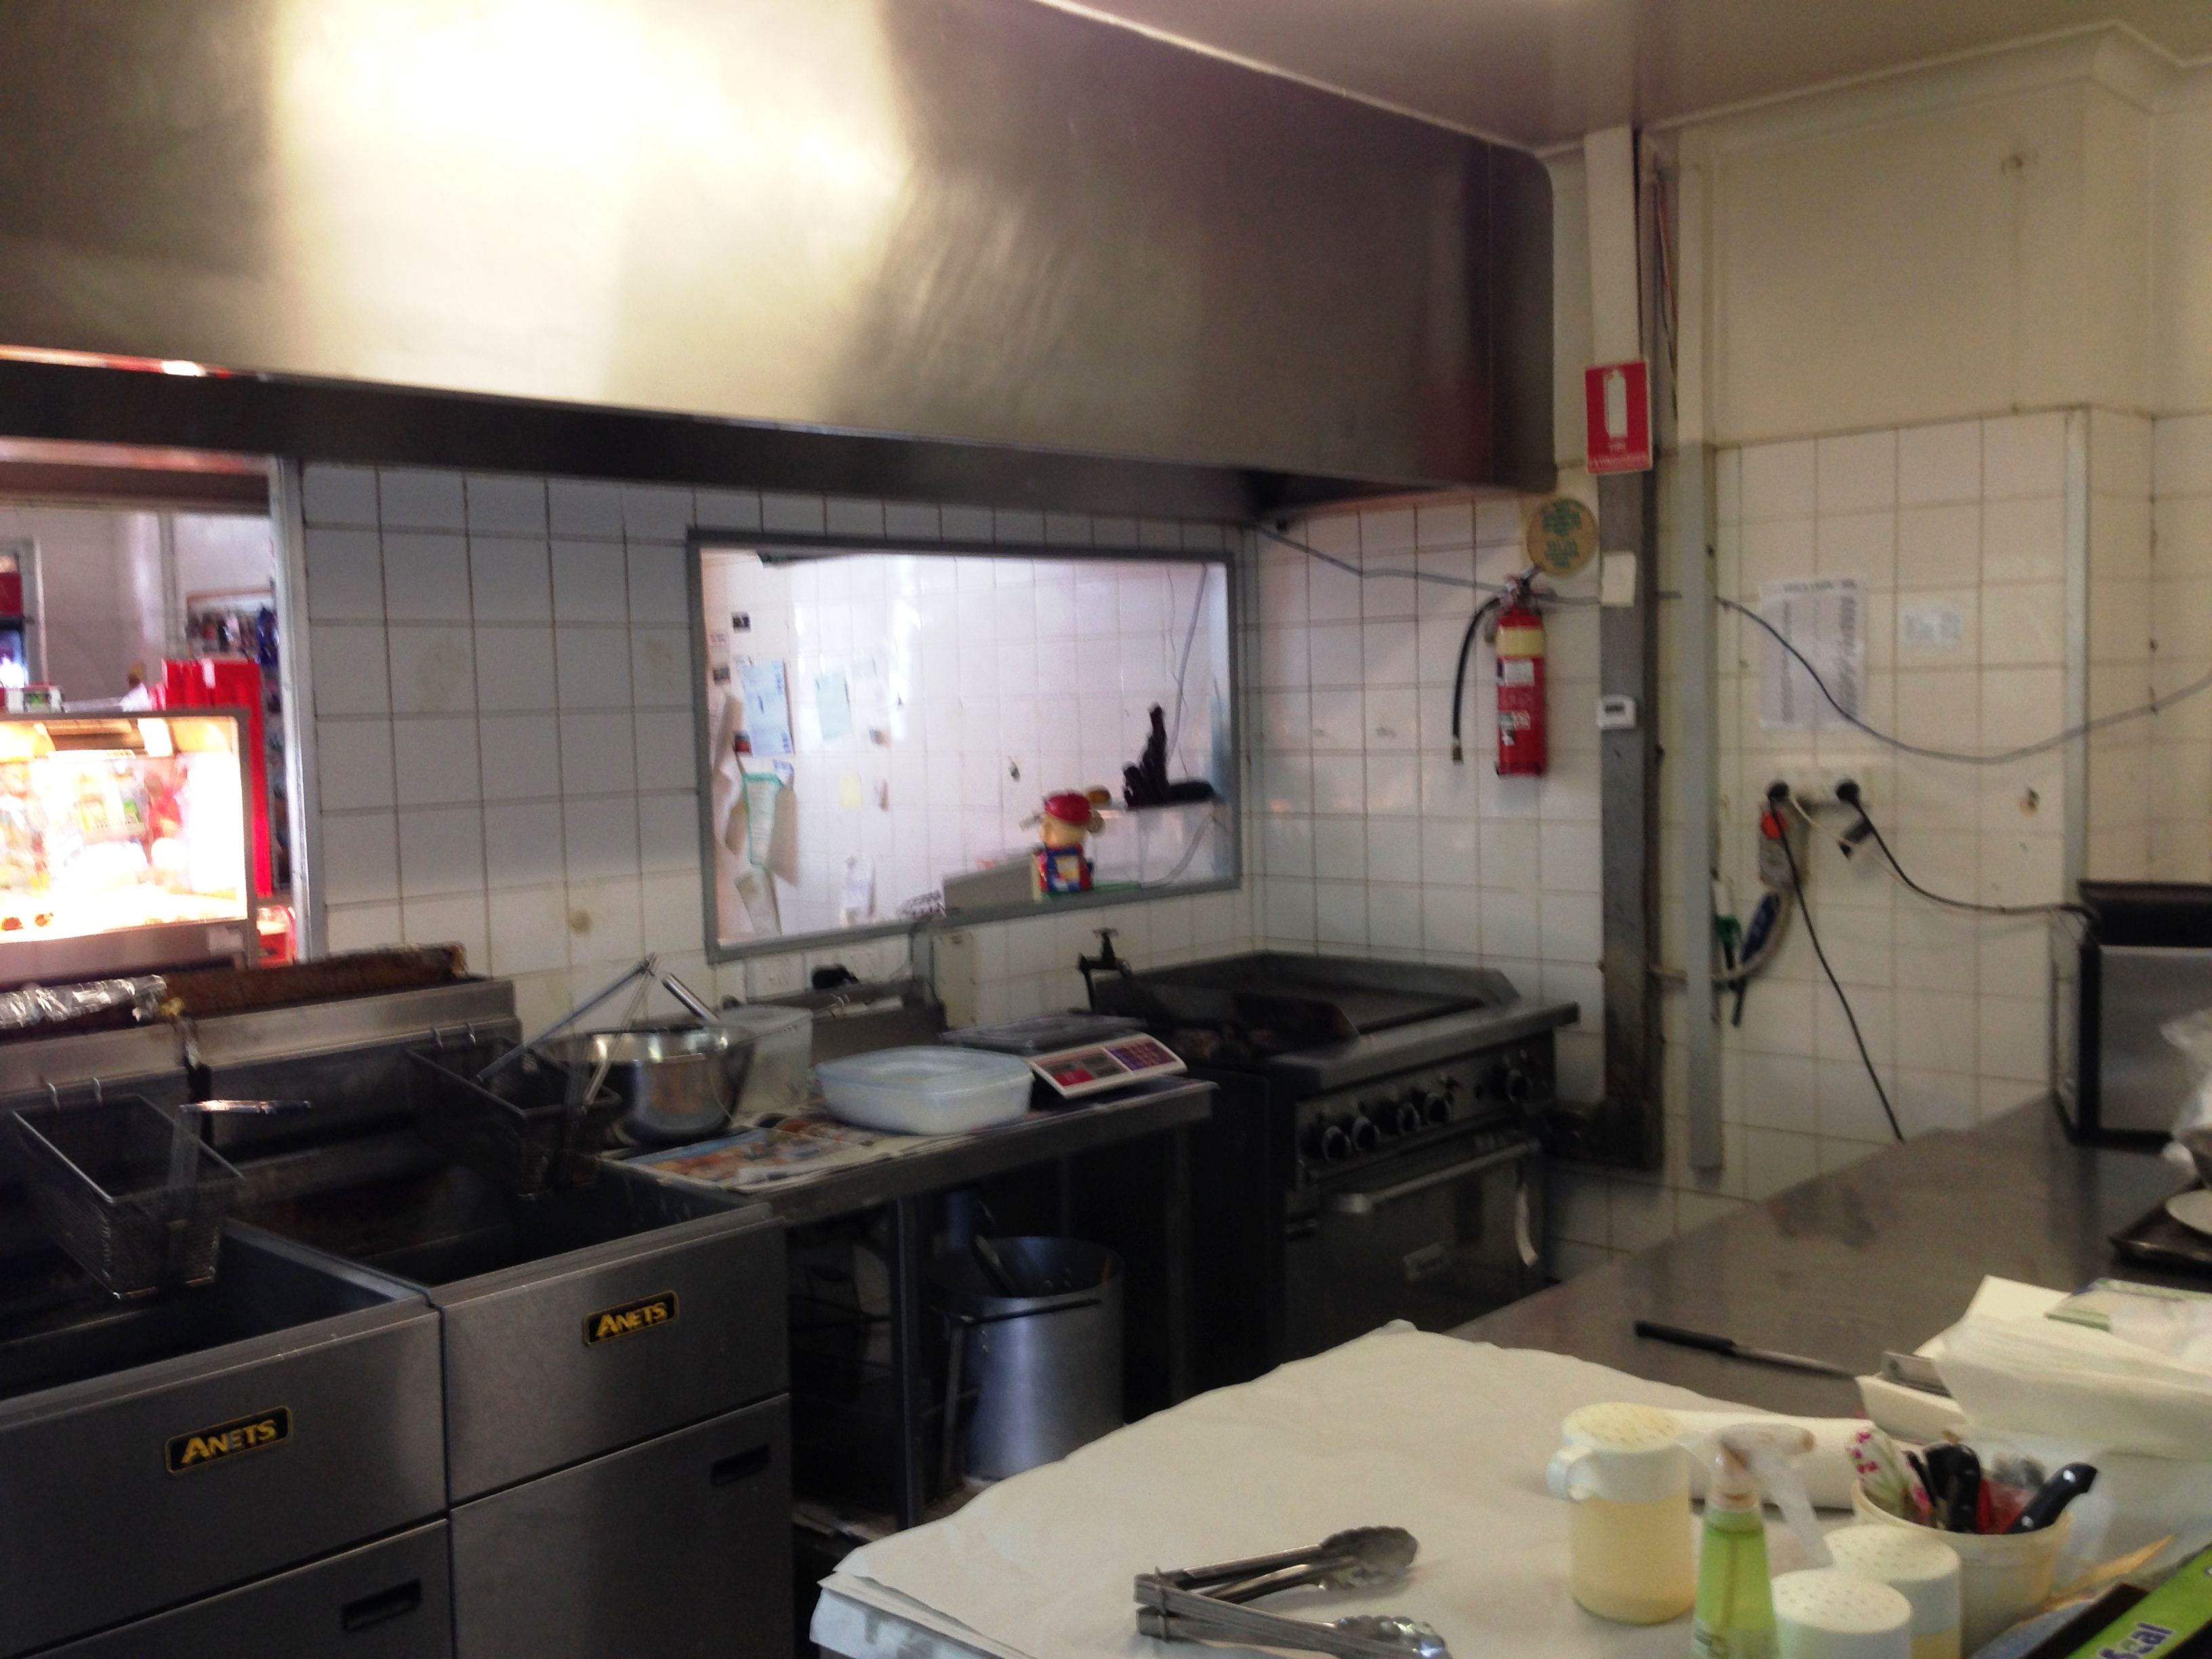 Lunch Bar – F&C – Convenience Store, Owner Wants it SOLD